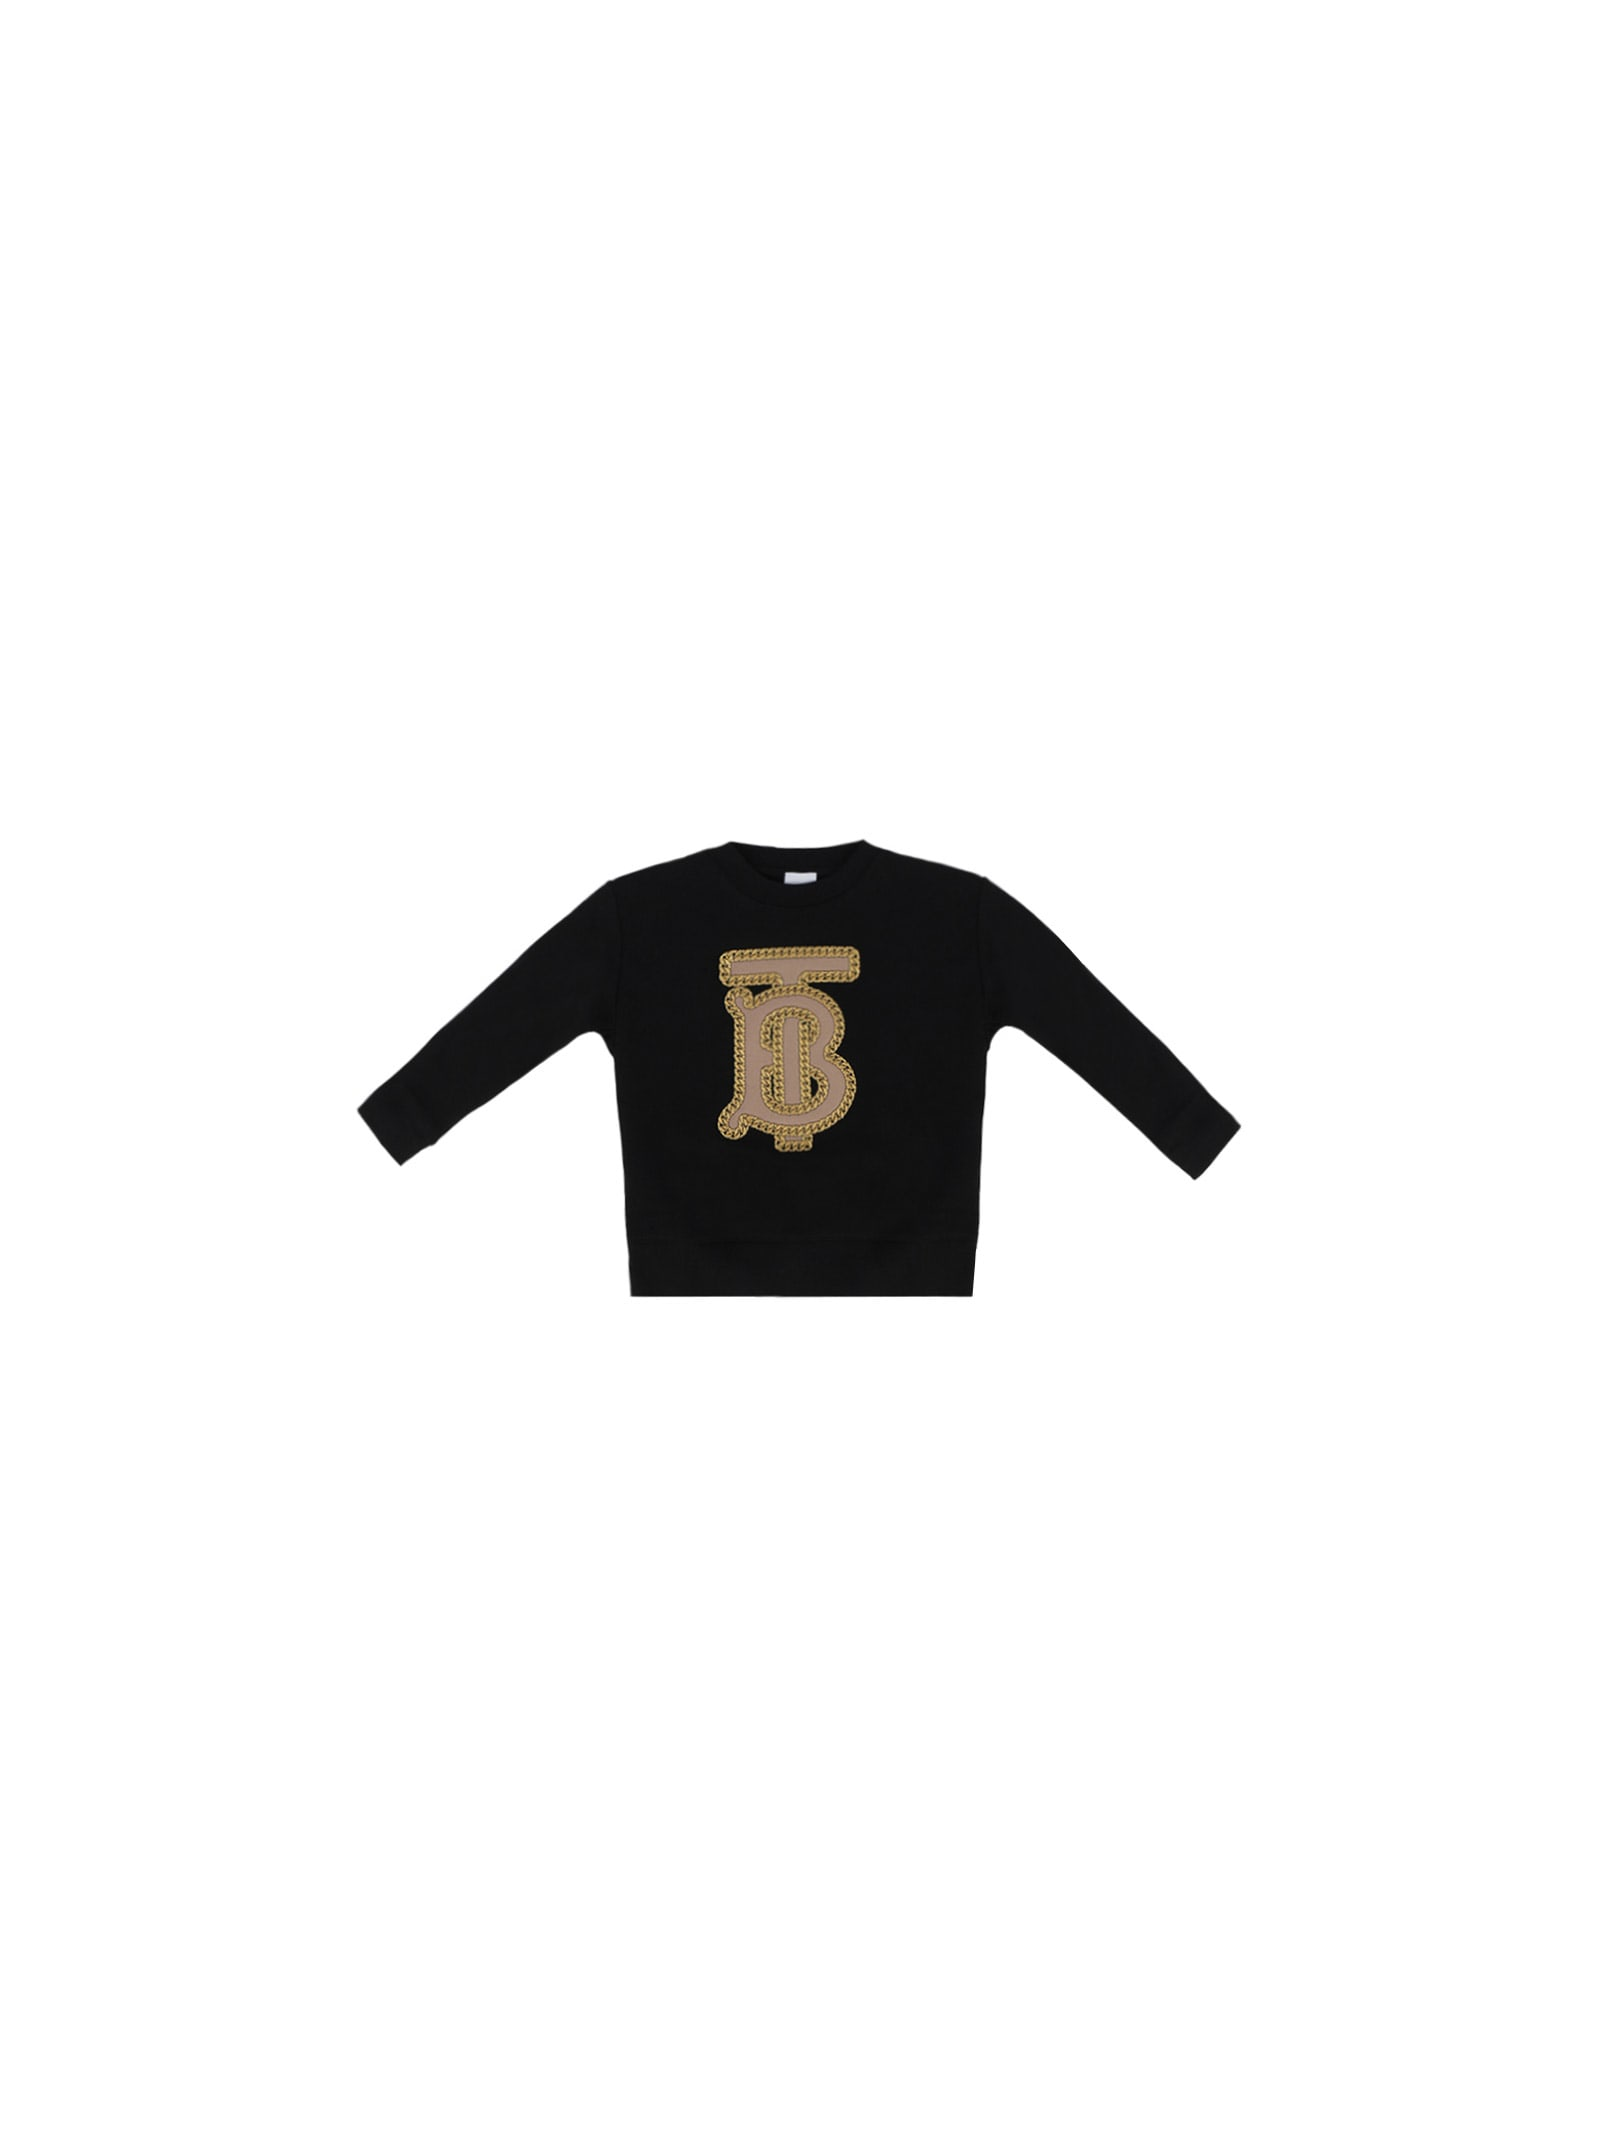 Burberry Kids' Sweatshirt For Boy In Black